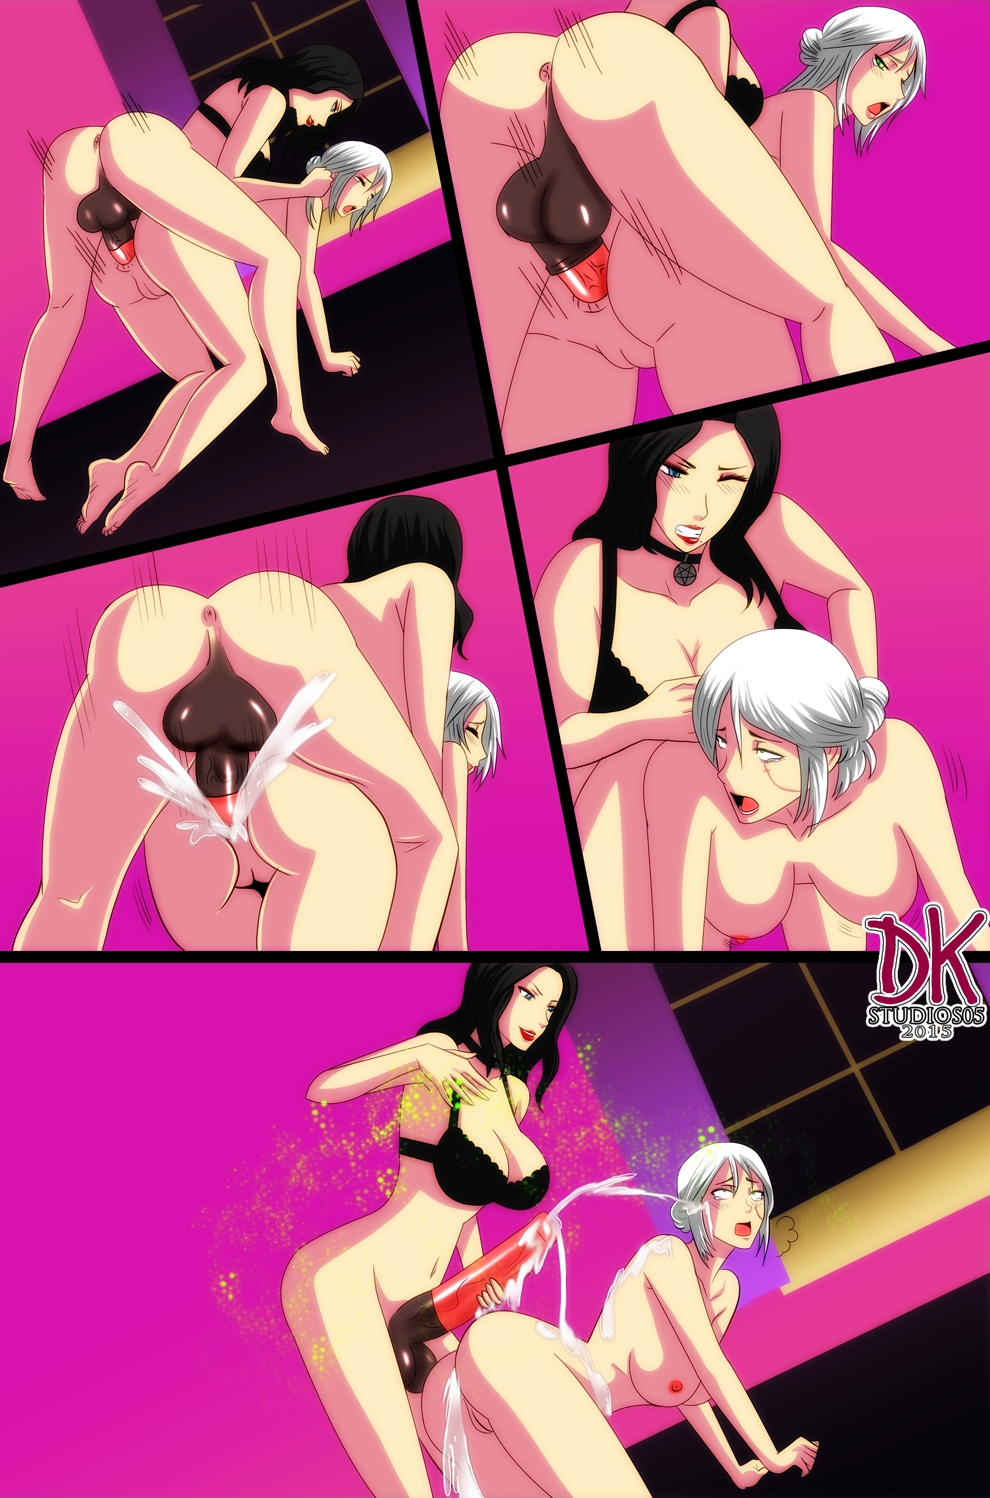 The witcher 2 porno anime exposed photos